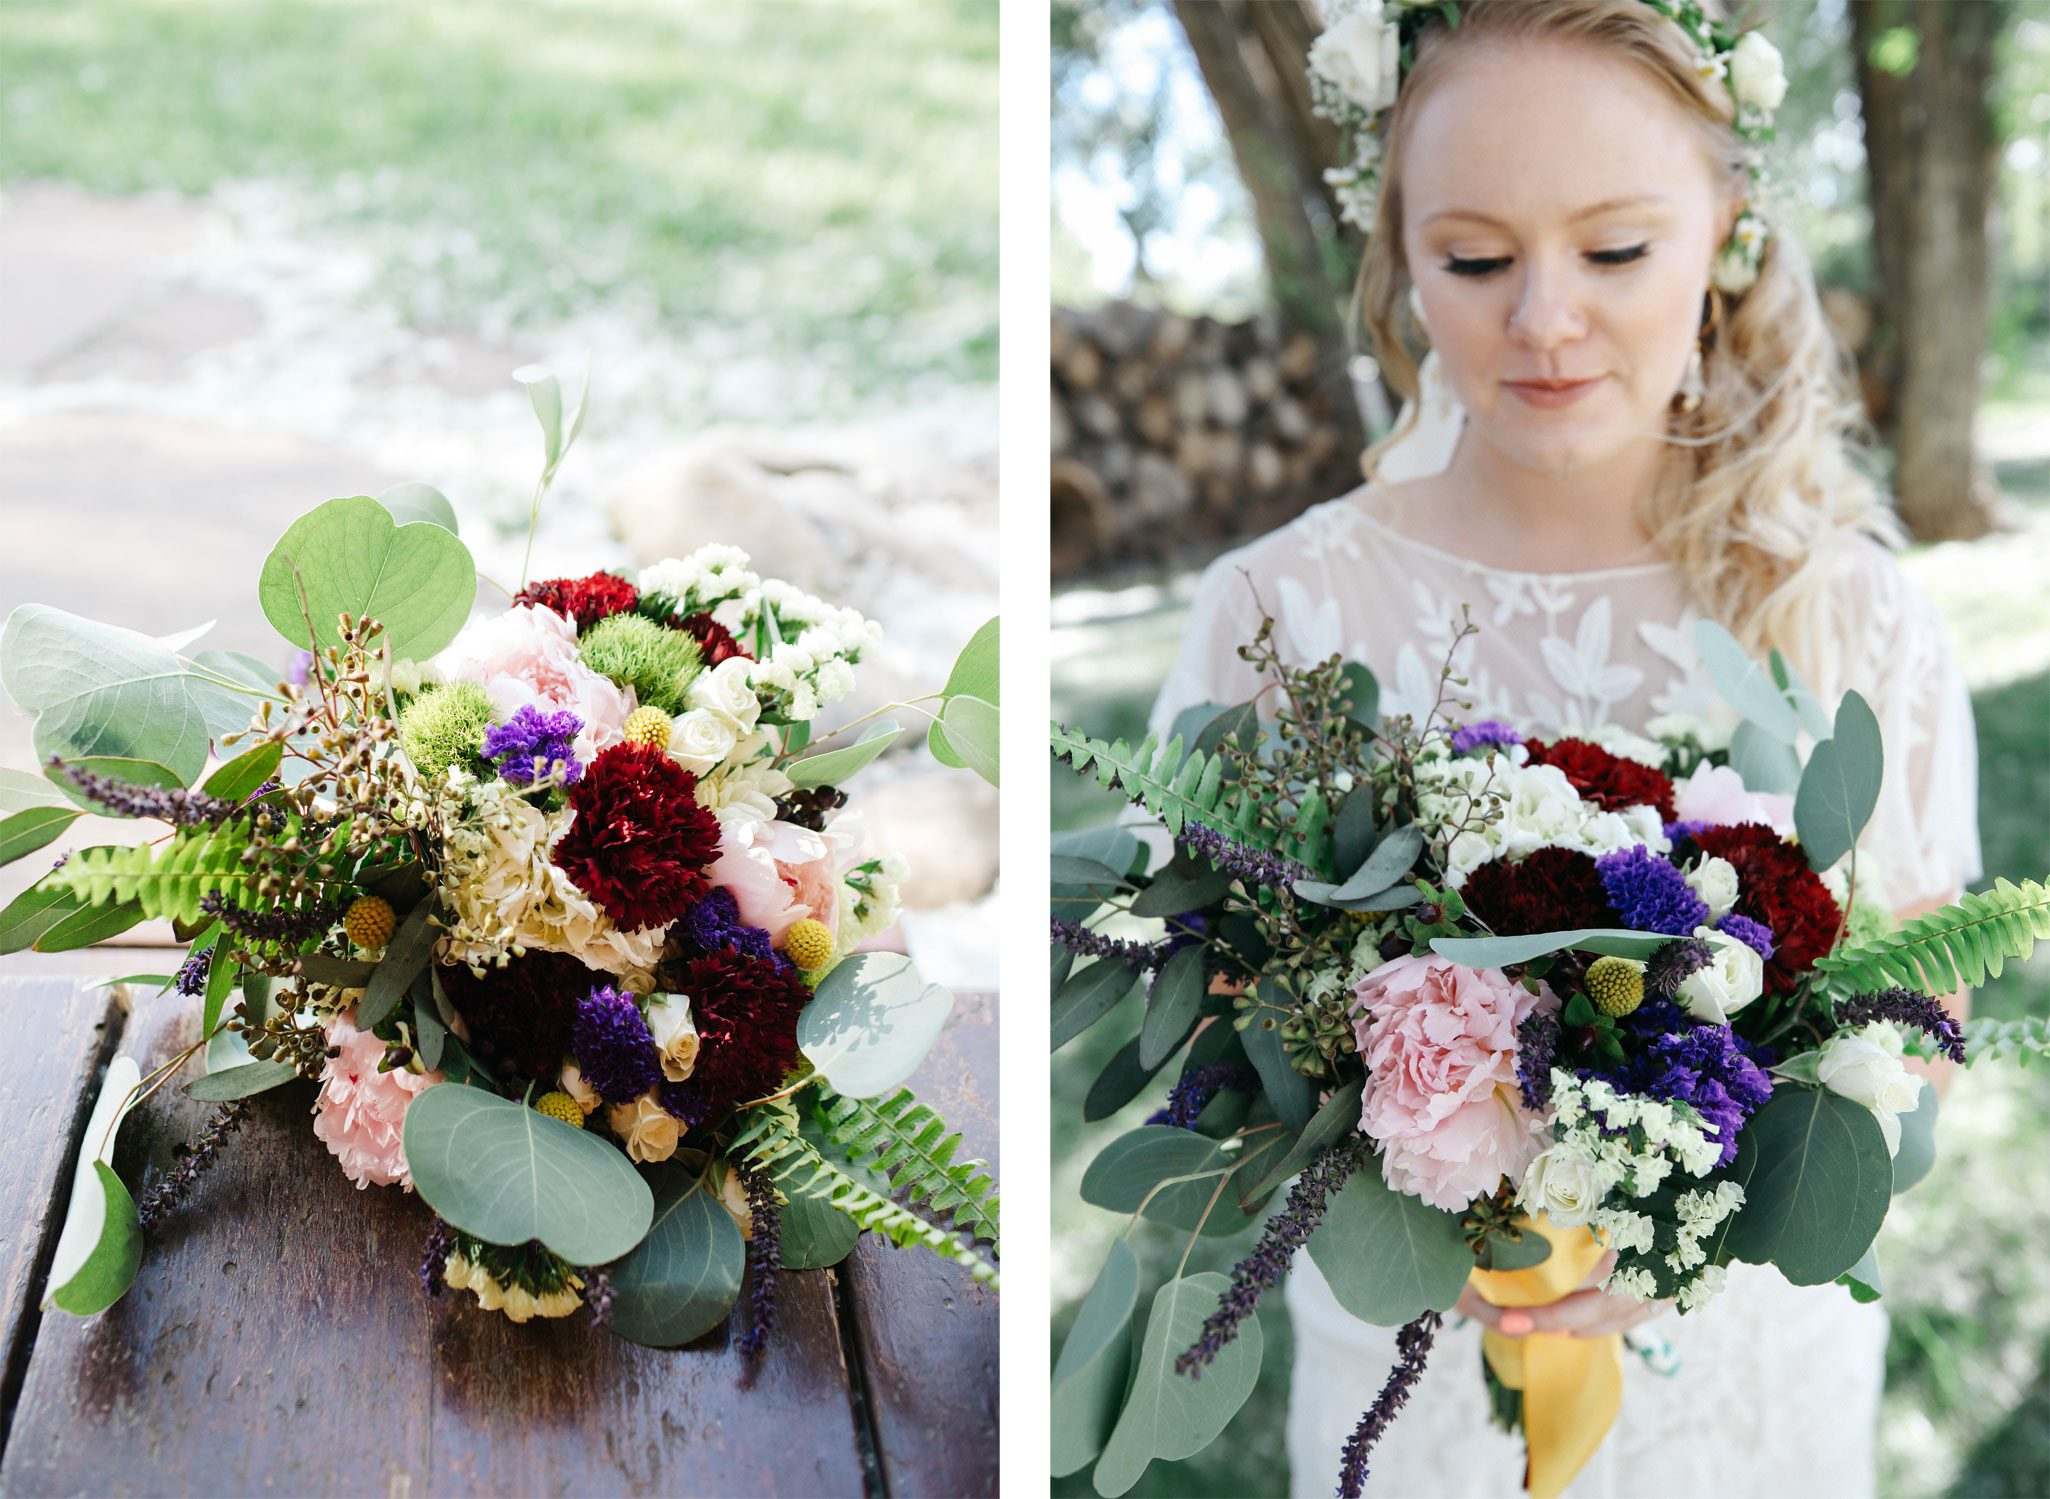 A beautiful floral bouquet from a mountain wedding in Durango, Colorado